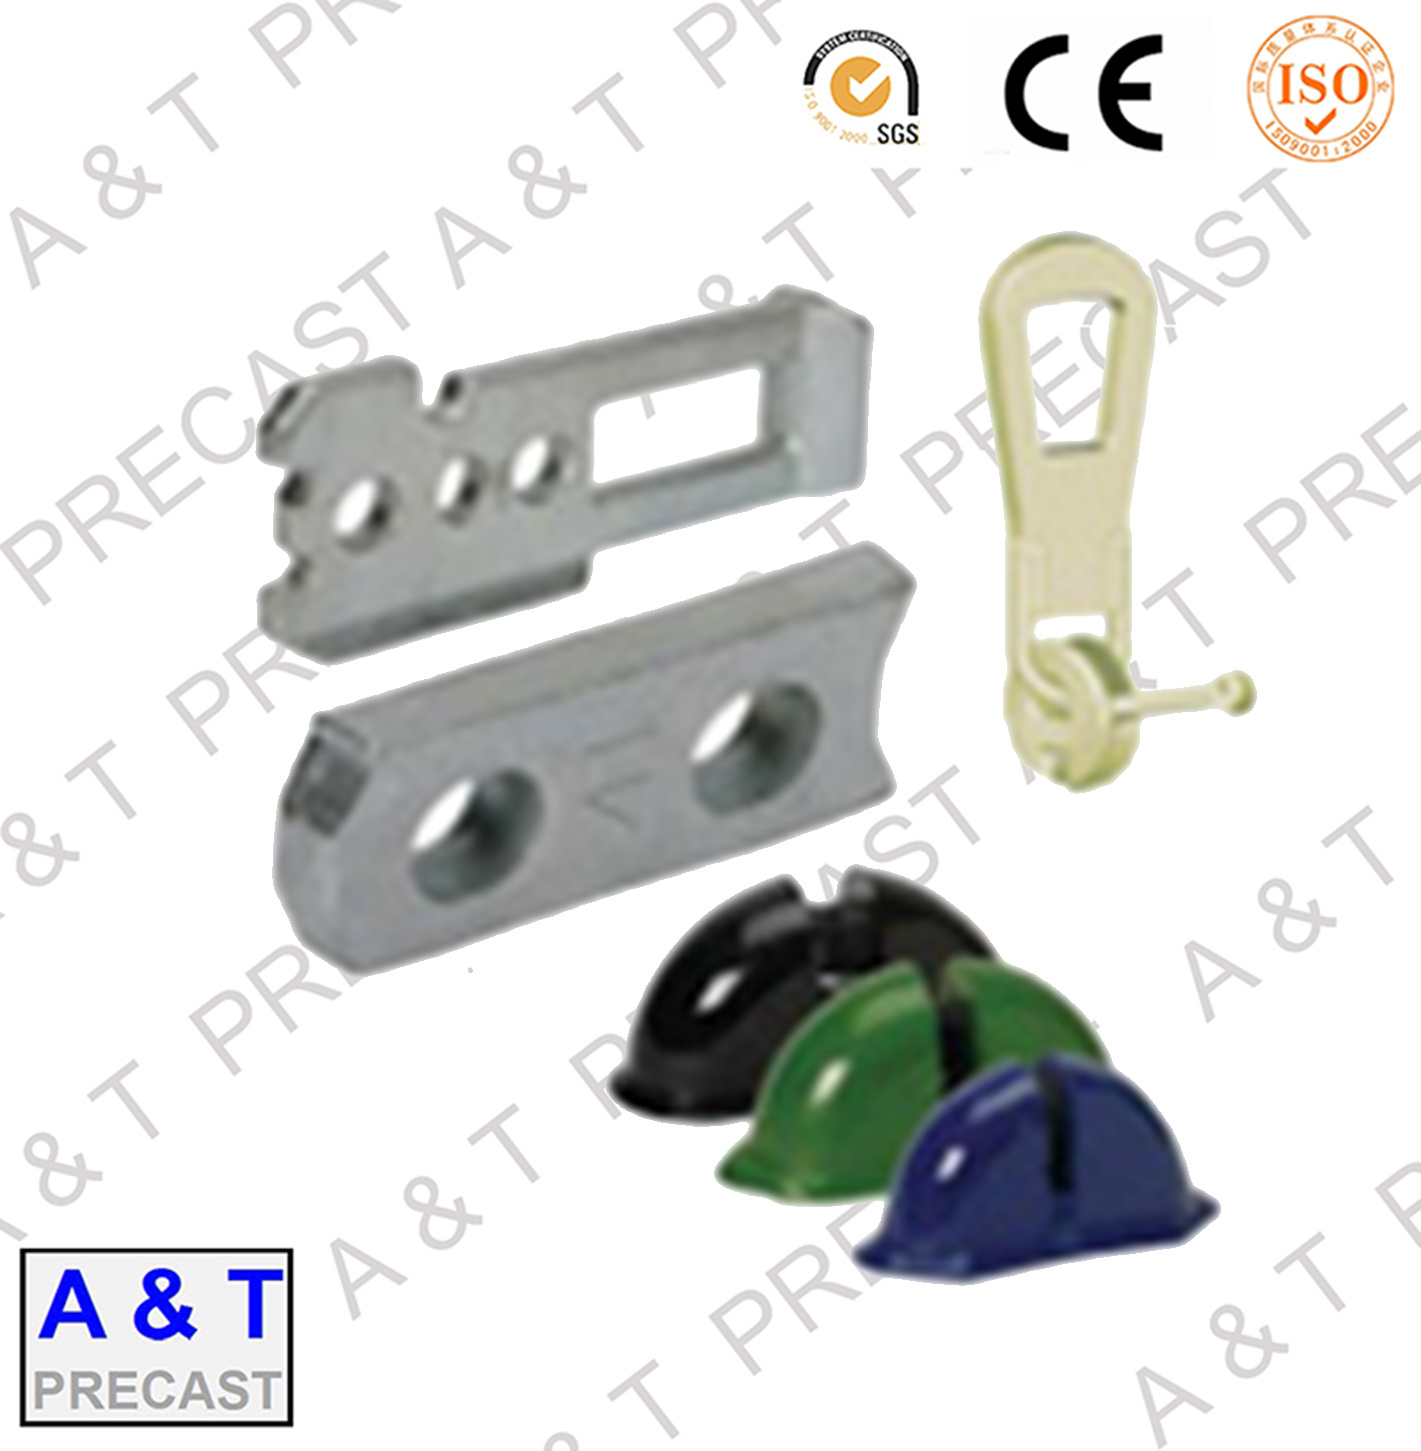 Carbon Steel Two Hole Anchor of High Quality (2.5Ton)